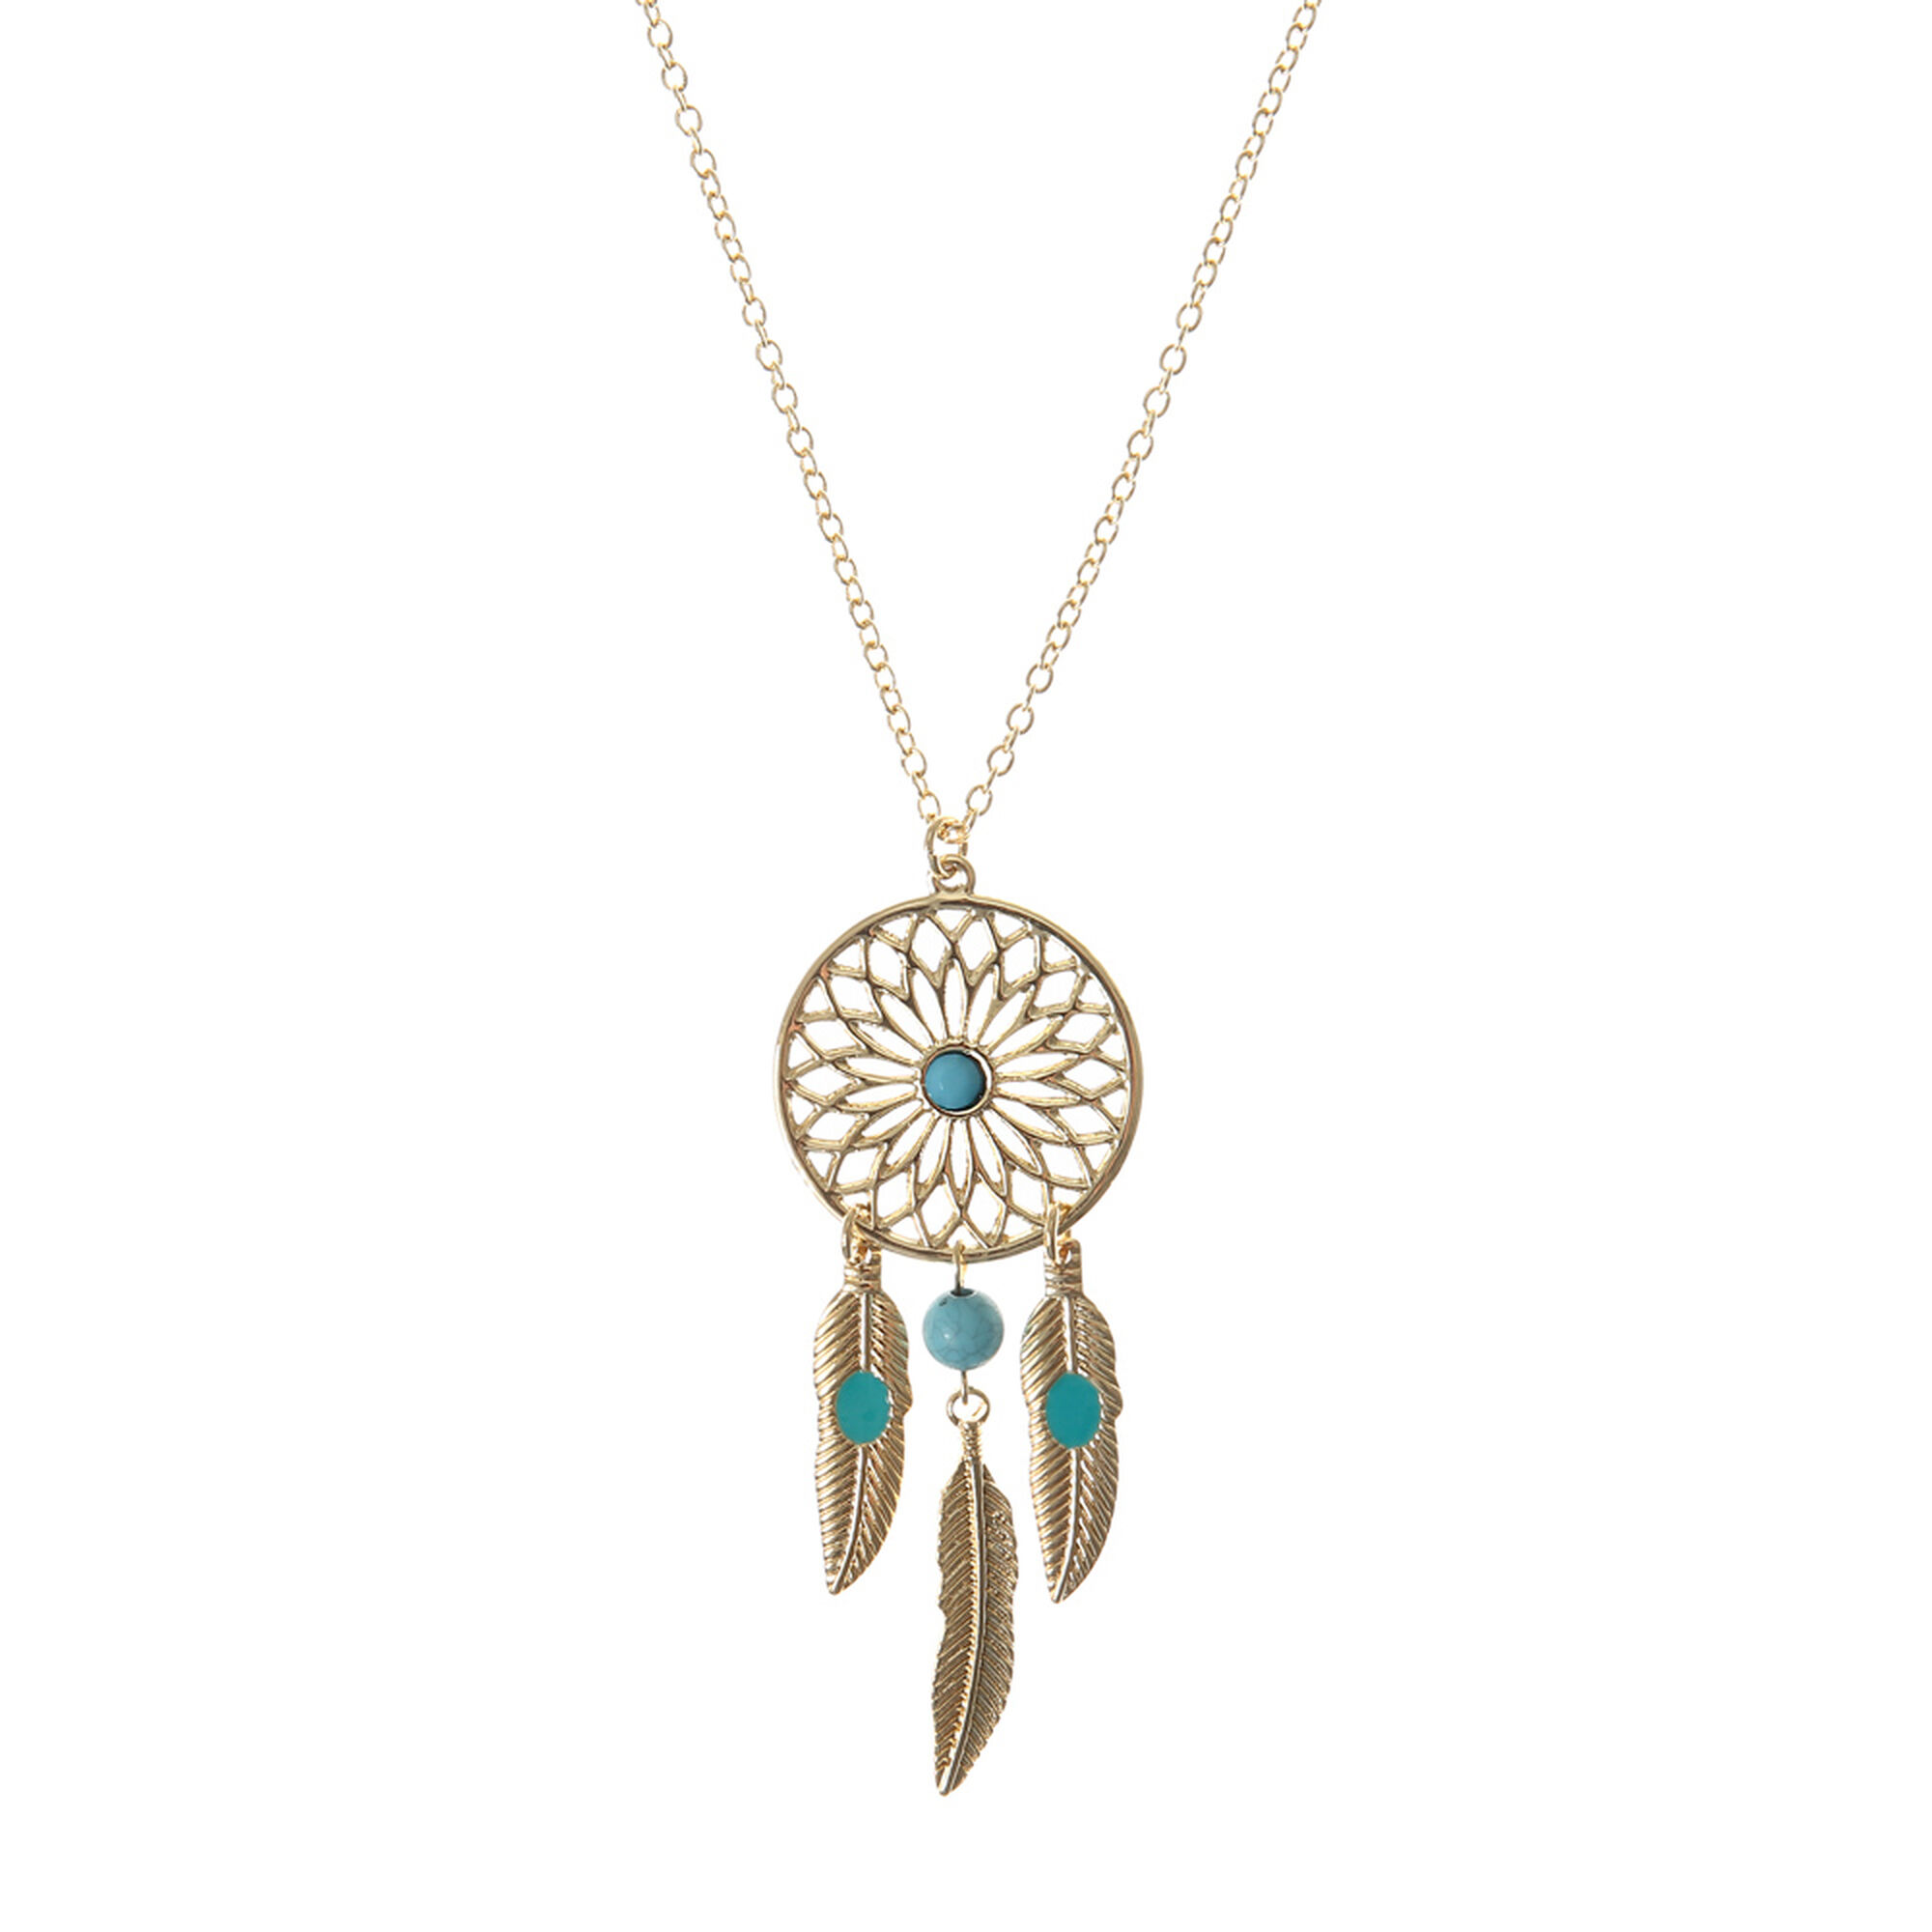 necklace charm dreamcatcher product hugerect catcher dainty dream lucky simple